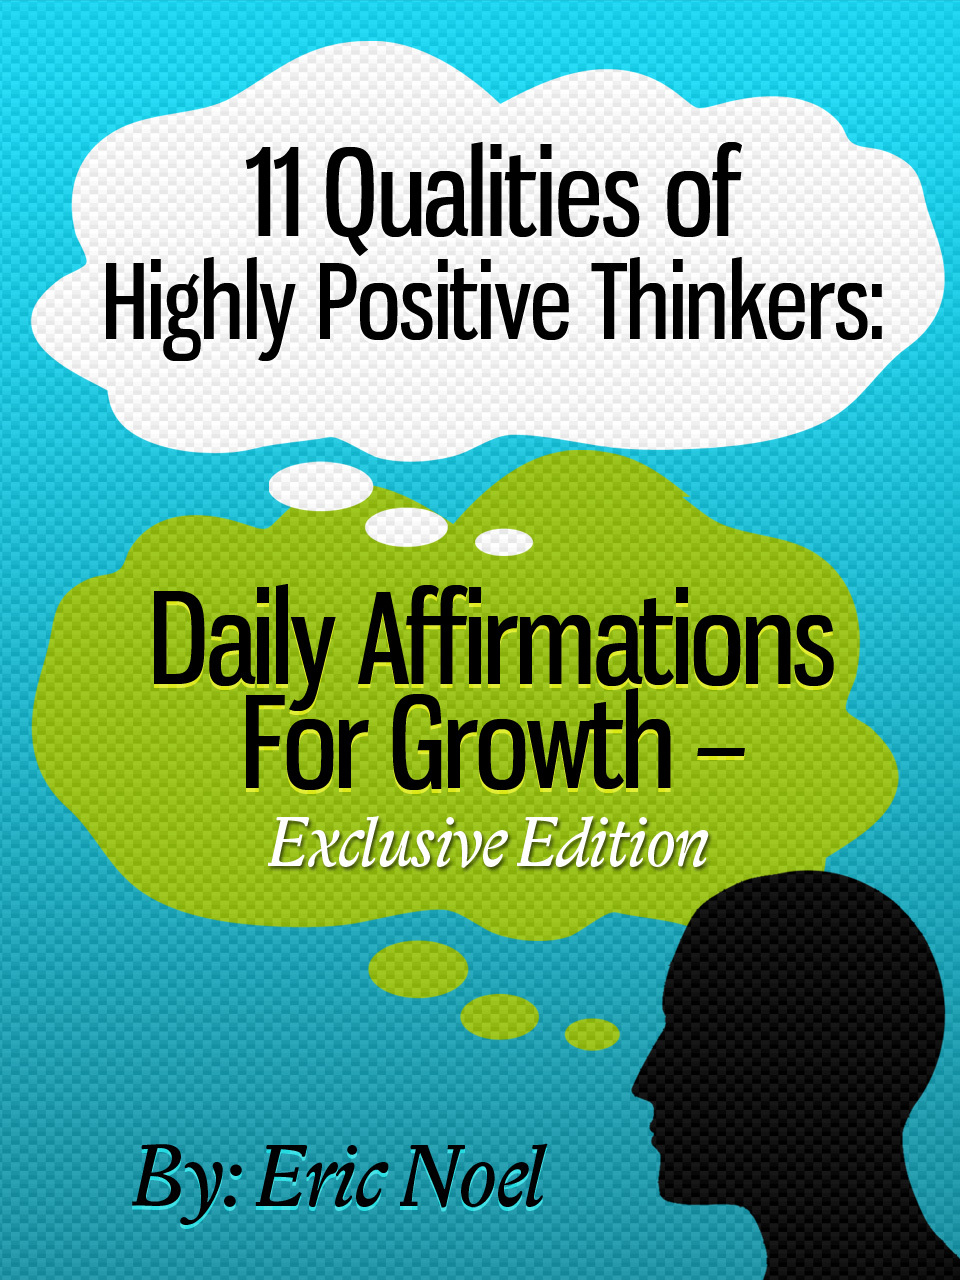 11 Qualities of Highly Positive Thinkers: Daily Affirmations For Growth